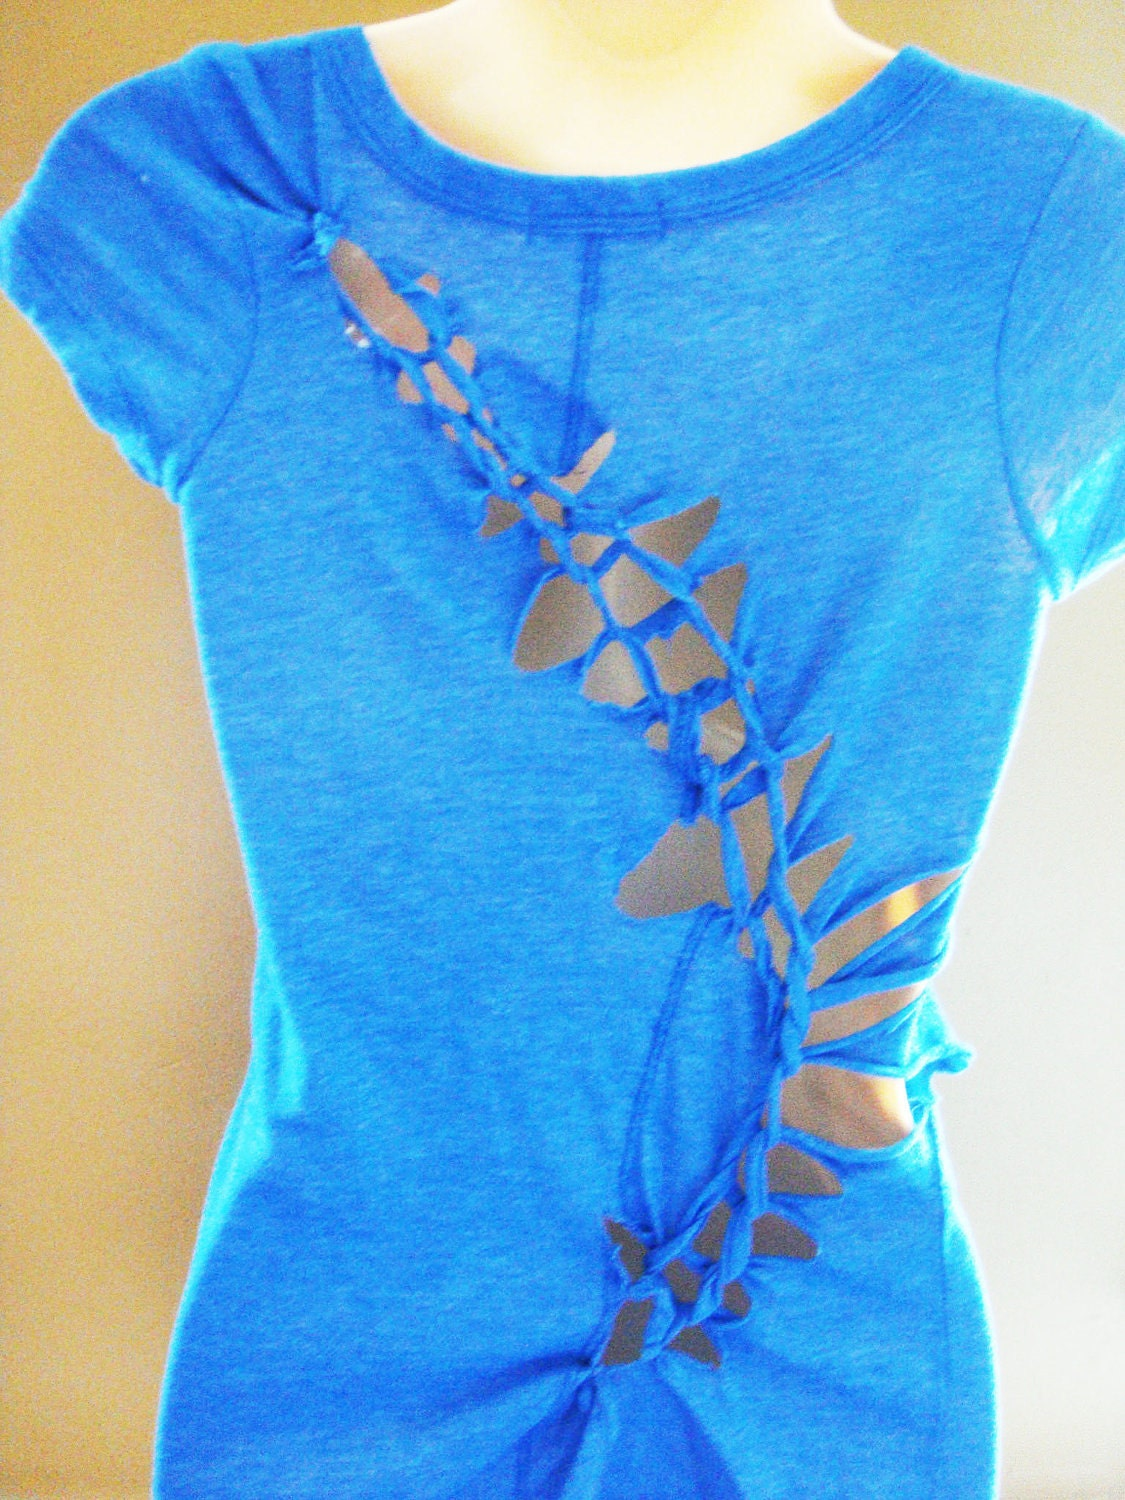 T shirt blue cut up weaved unique for How to copyright at shirt design